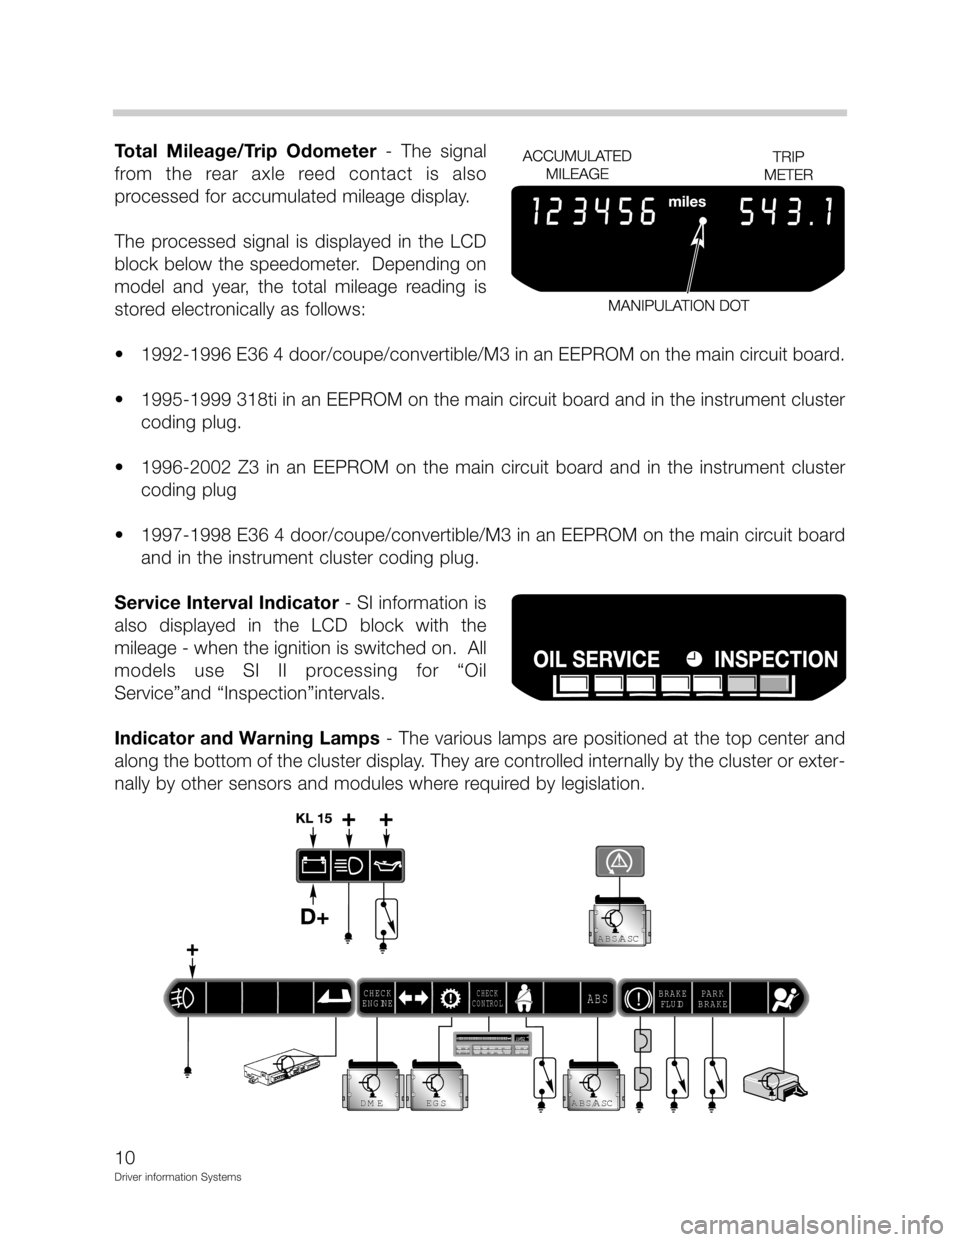 BMW Z3 CONVERTIBLE 1999 E36 Driver Information Systems Manual, Page 9